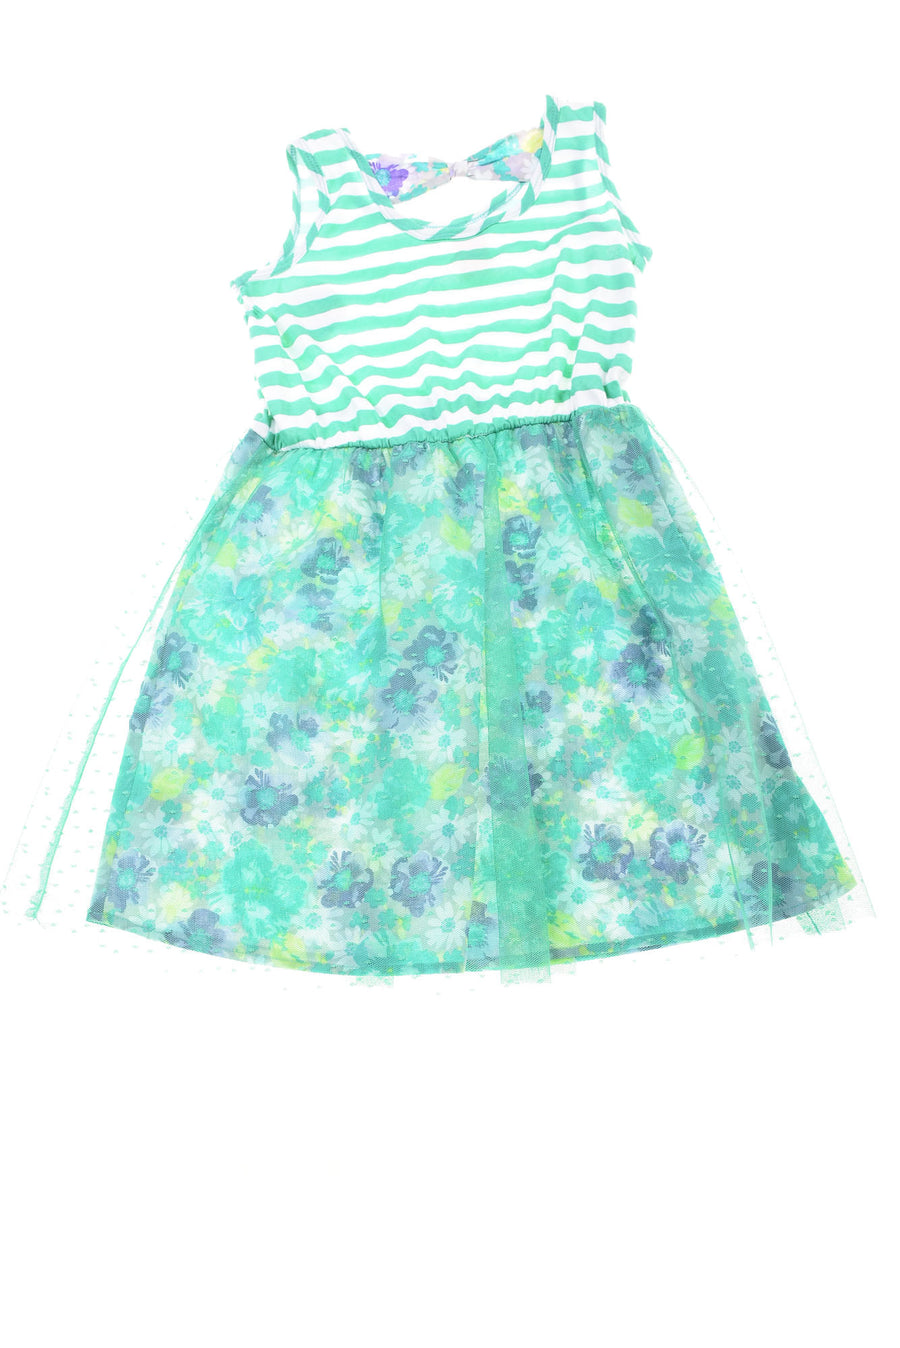 NEW Faded Glory Girl's Dress Medium Green & White